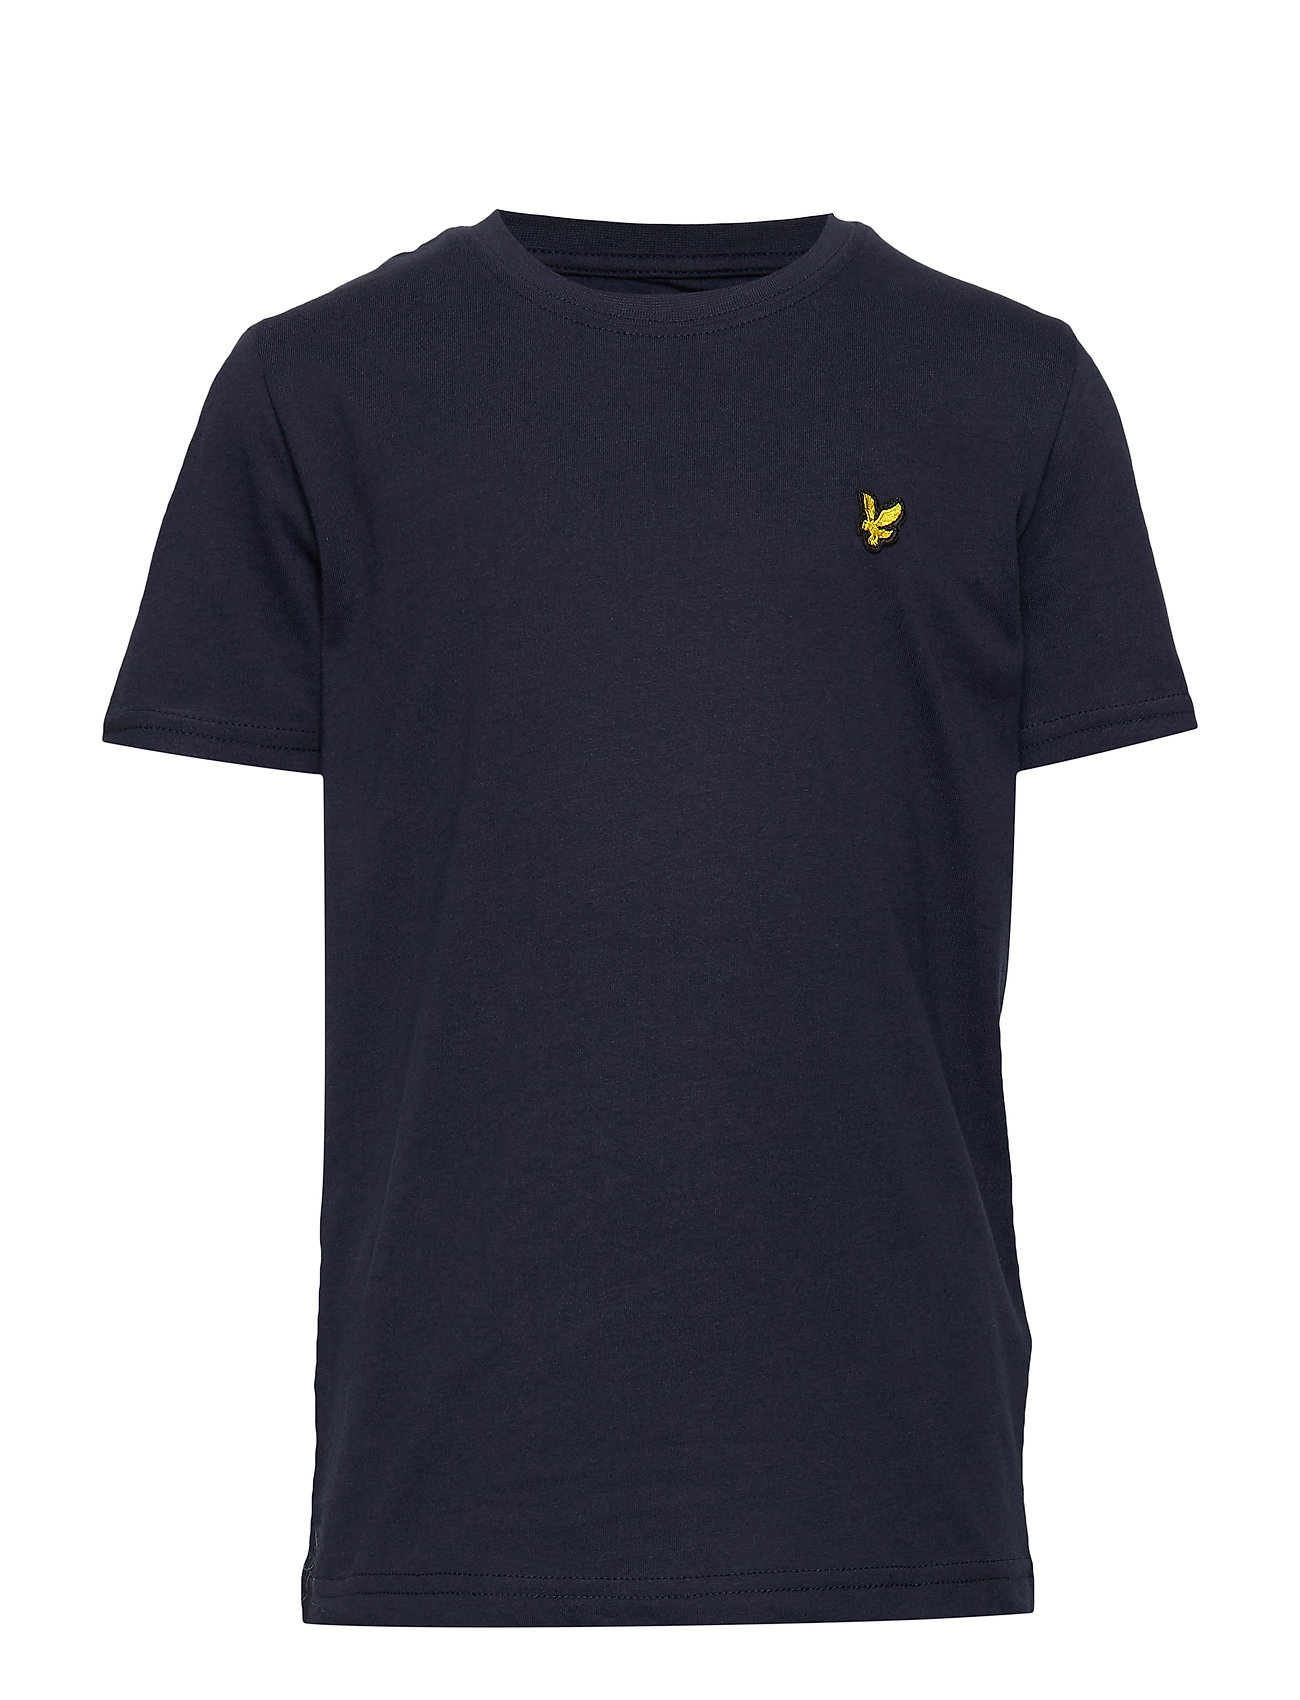 Lyle & Scott Junior Classic T-Shirt - NAVY BLAZER